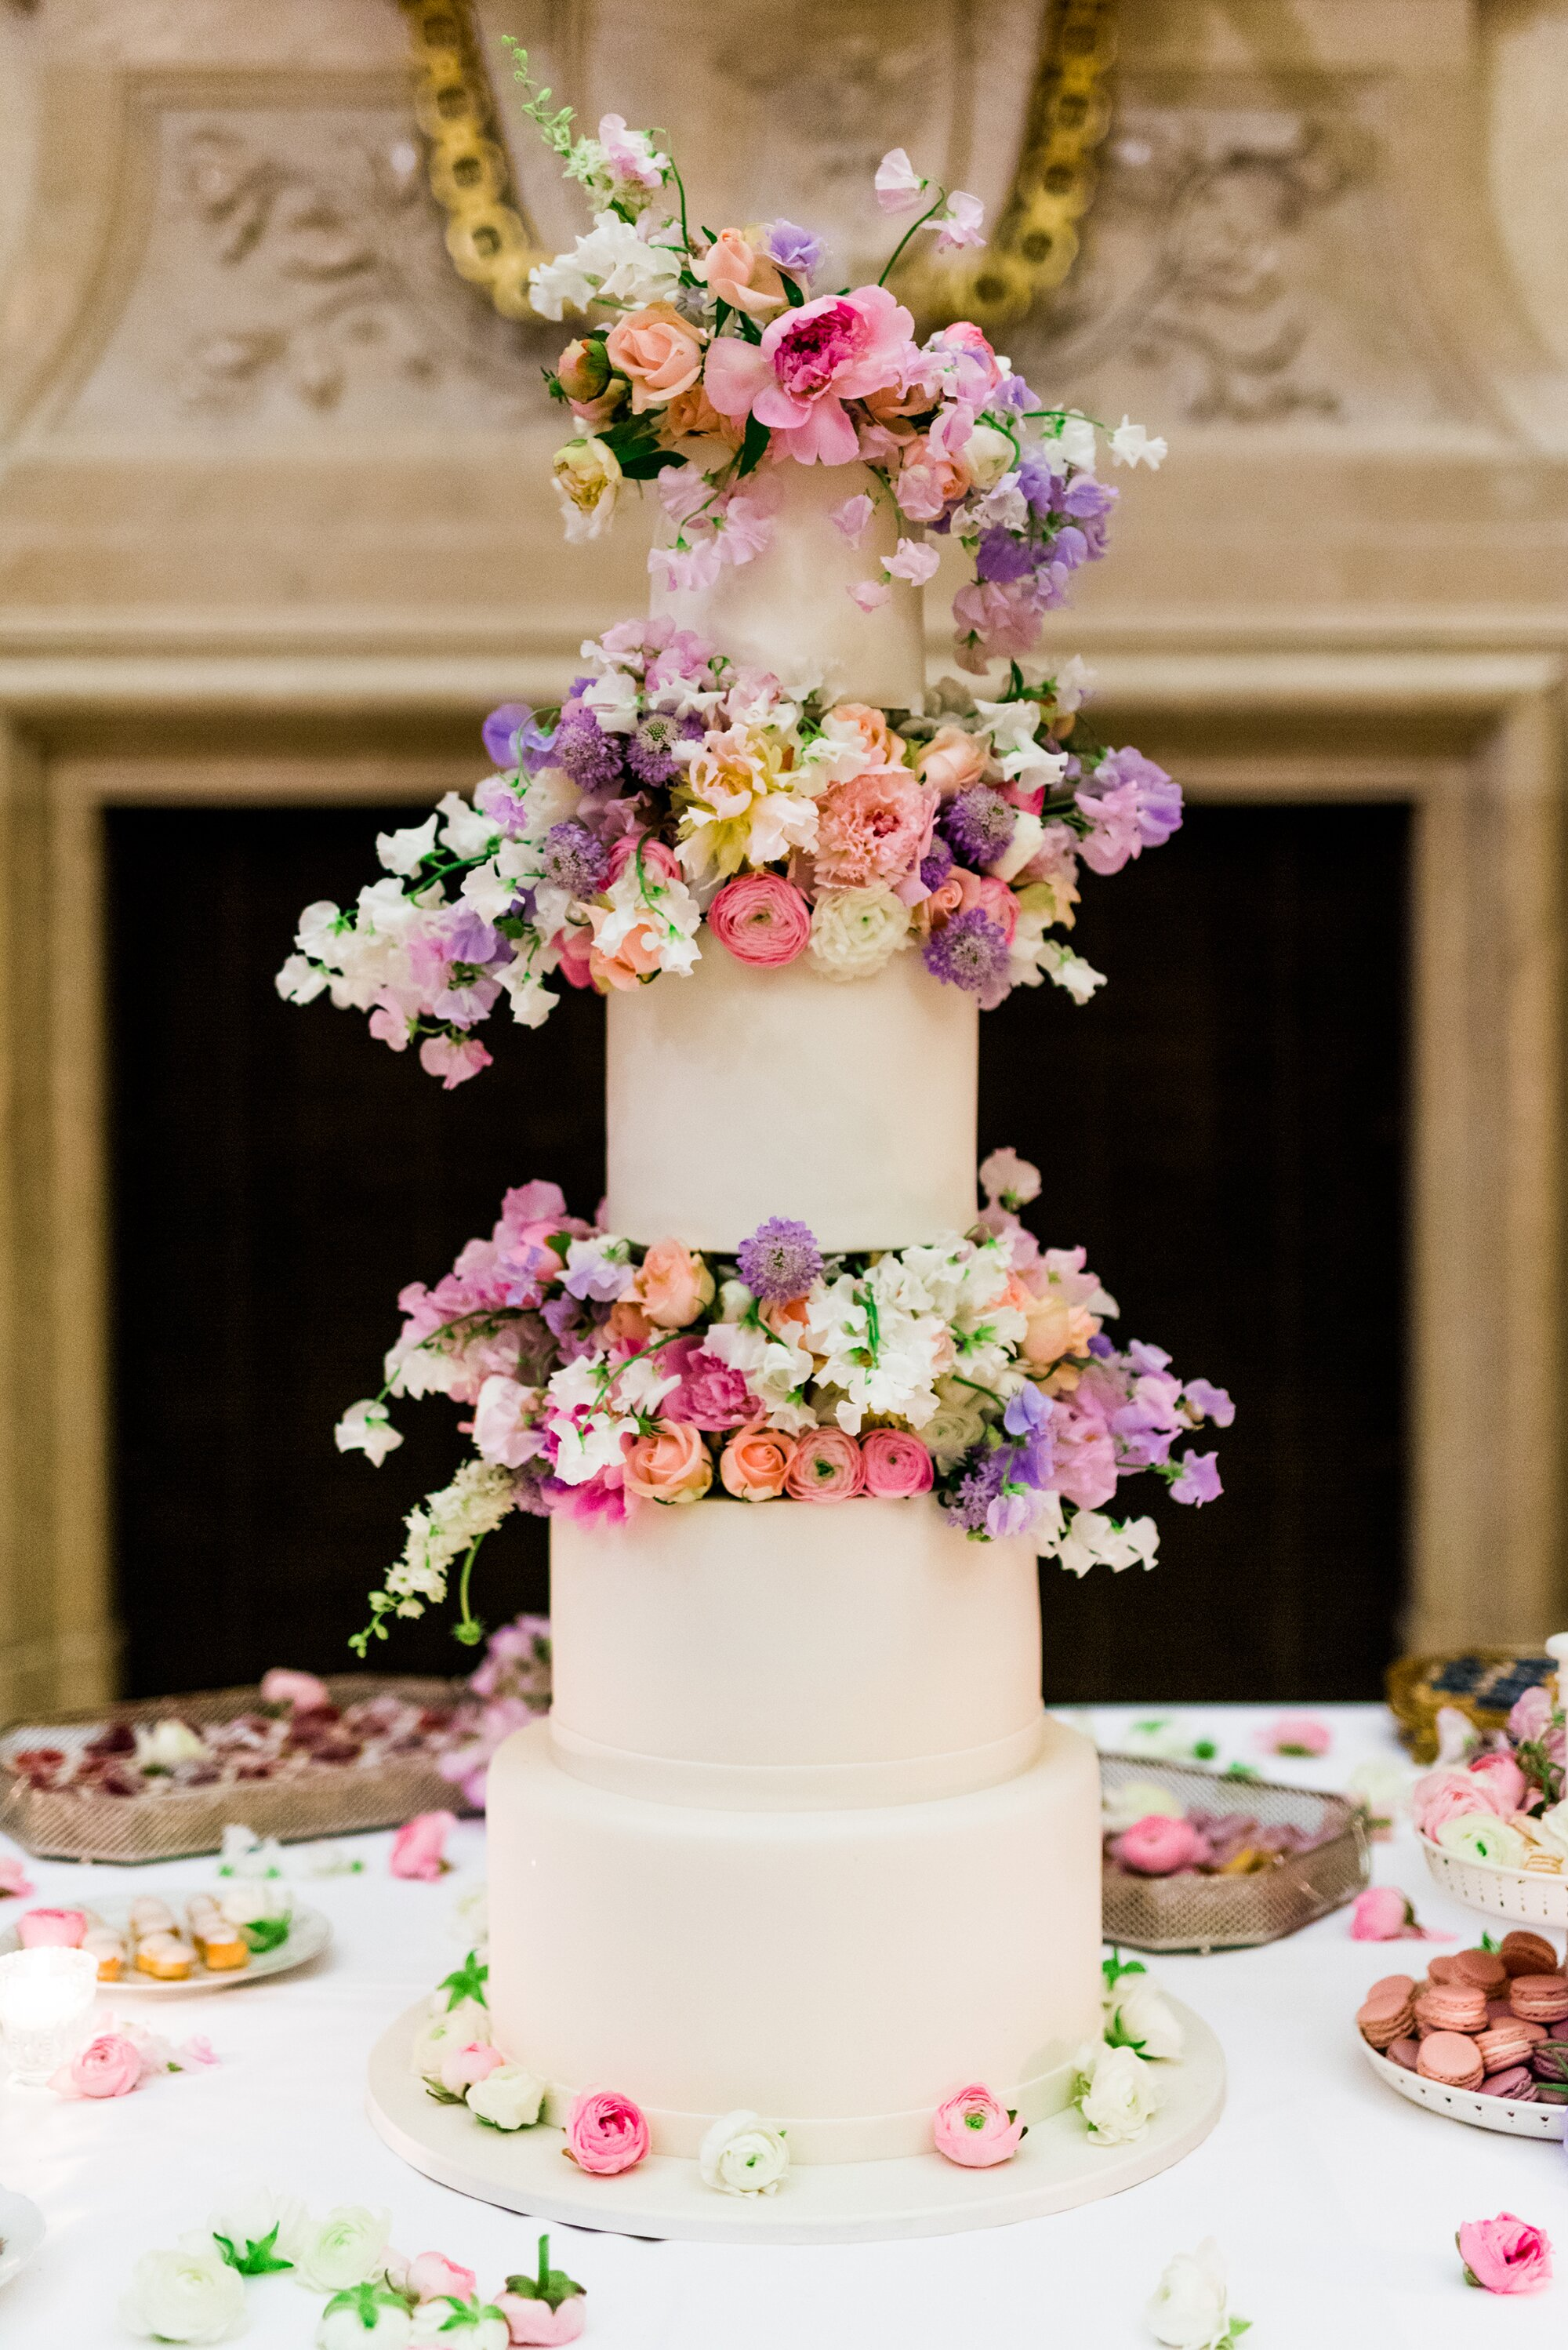 Trending Now Wedding Cakes With Floral Tiers Martha Stewart